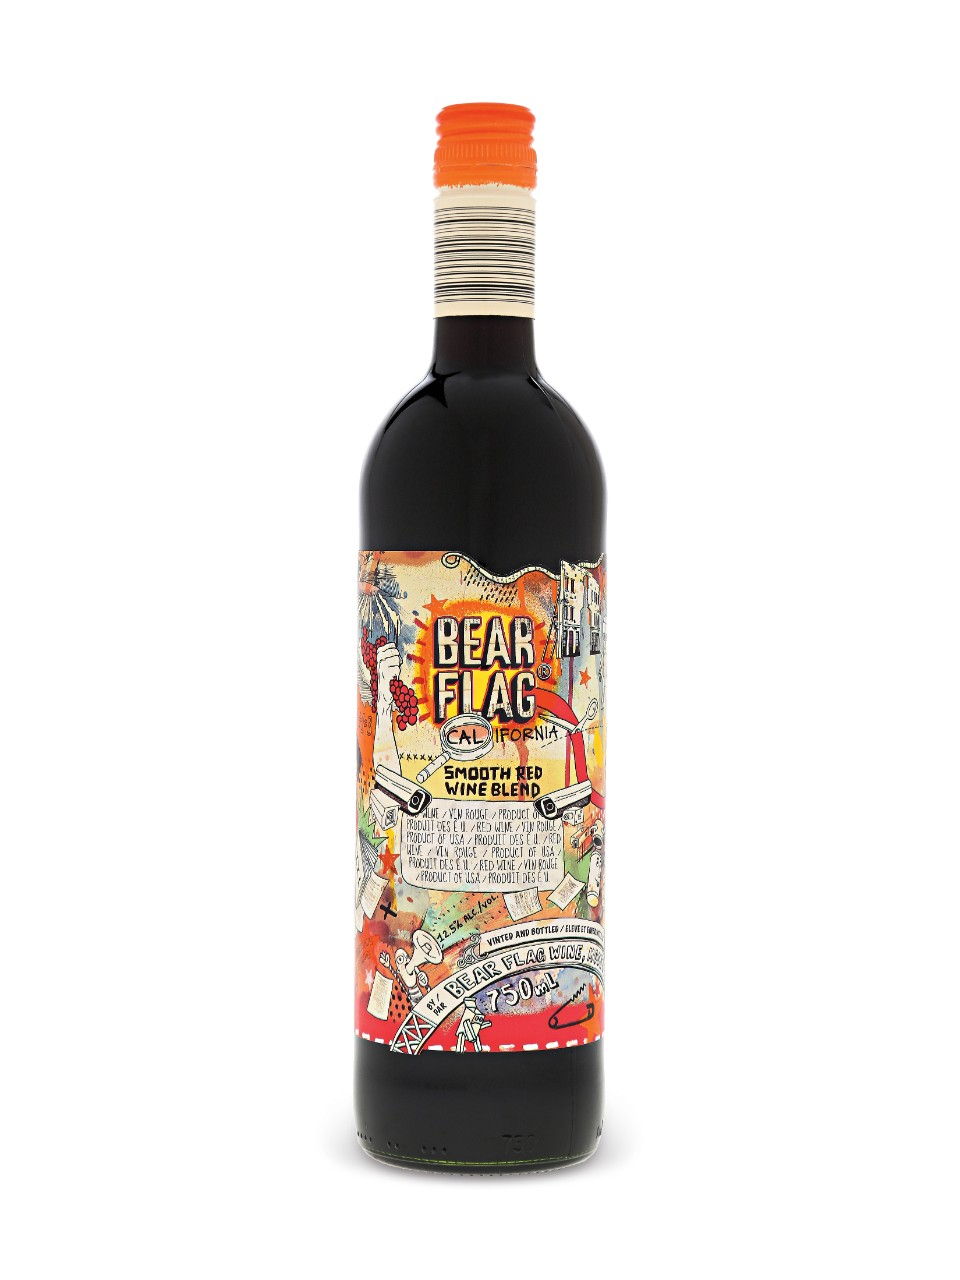 Image result for Bear flag red blend